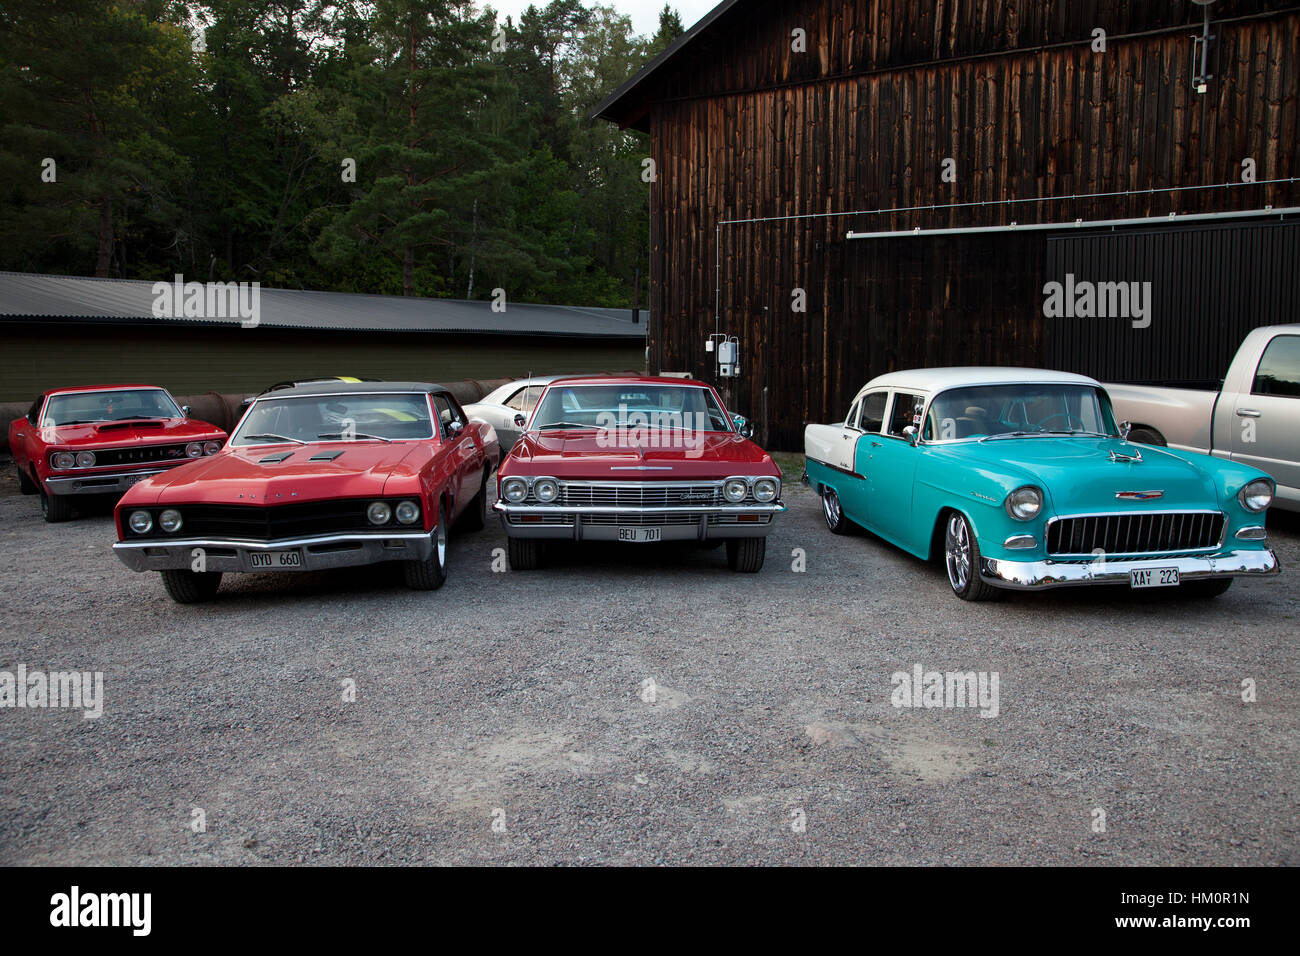 Car meet with American muscle cars in Sweden Stock Photo: 132783777 ...